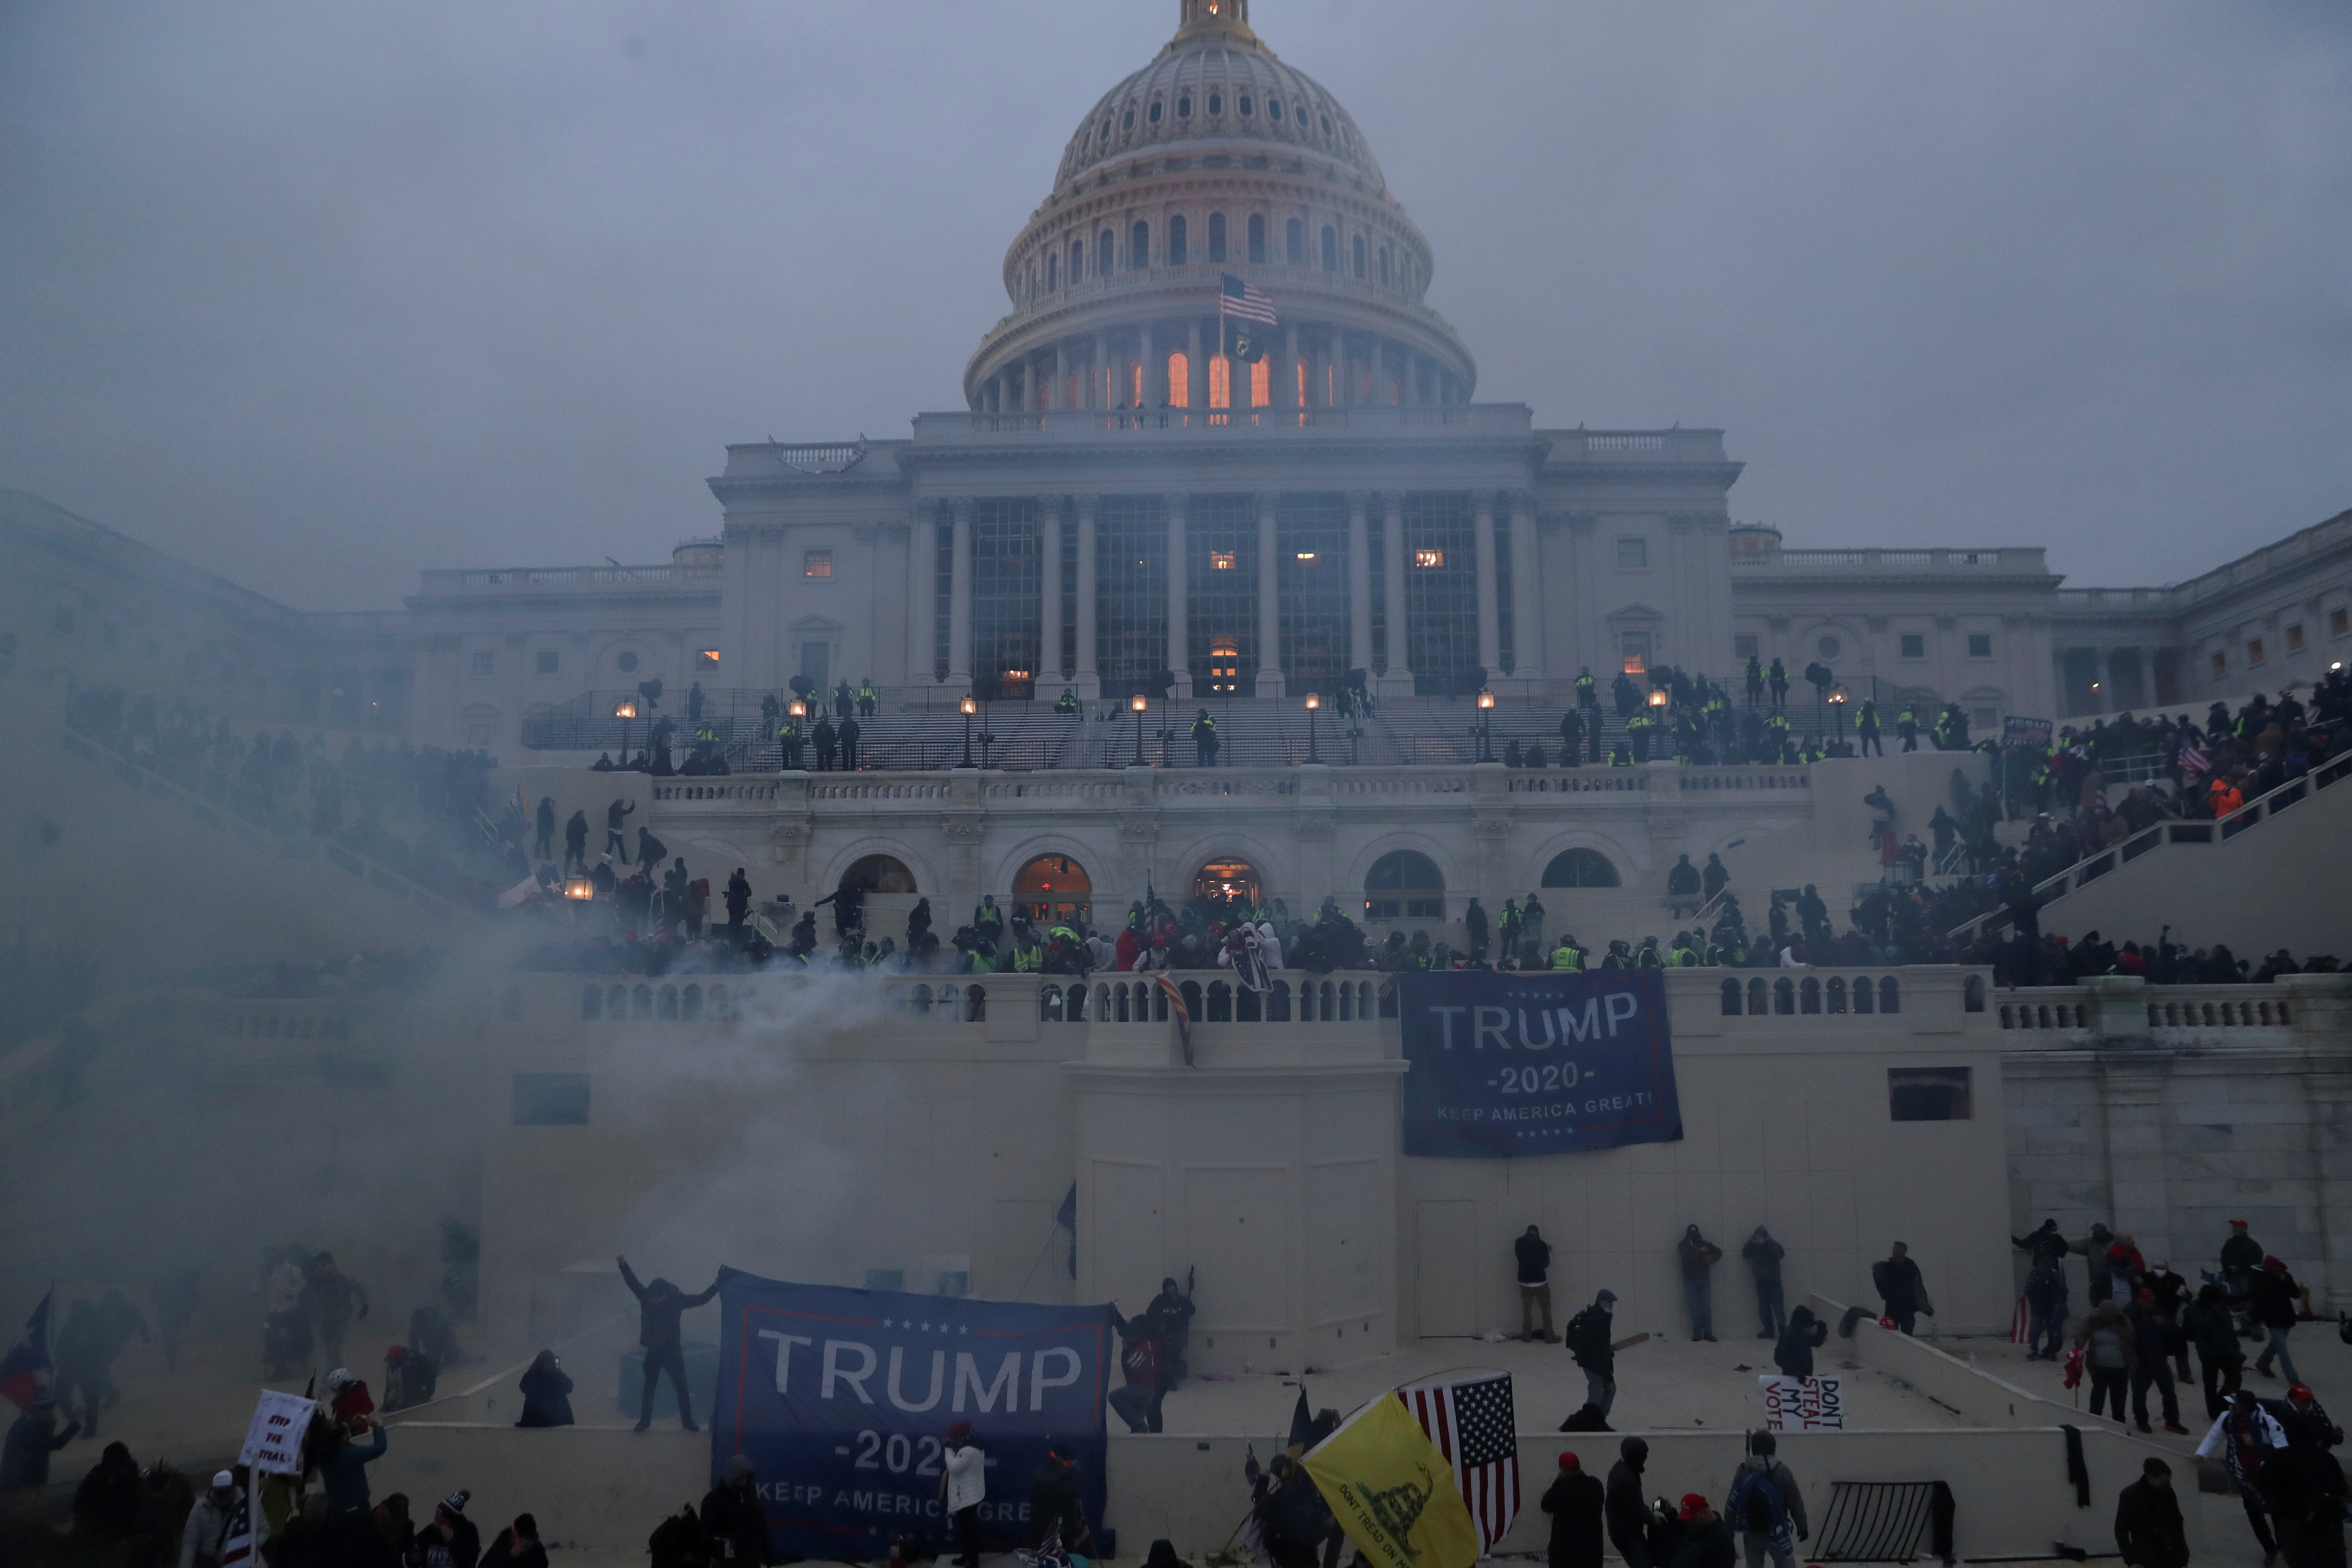 Police officers stand guard as supporters of US President Donald Trump gather in front of the US Capitol Building in Washington January 6, 2021. — Reuters pic